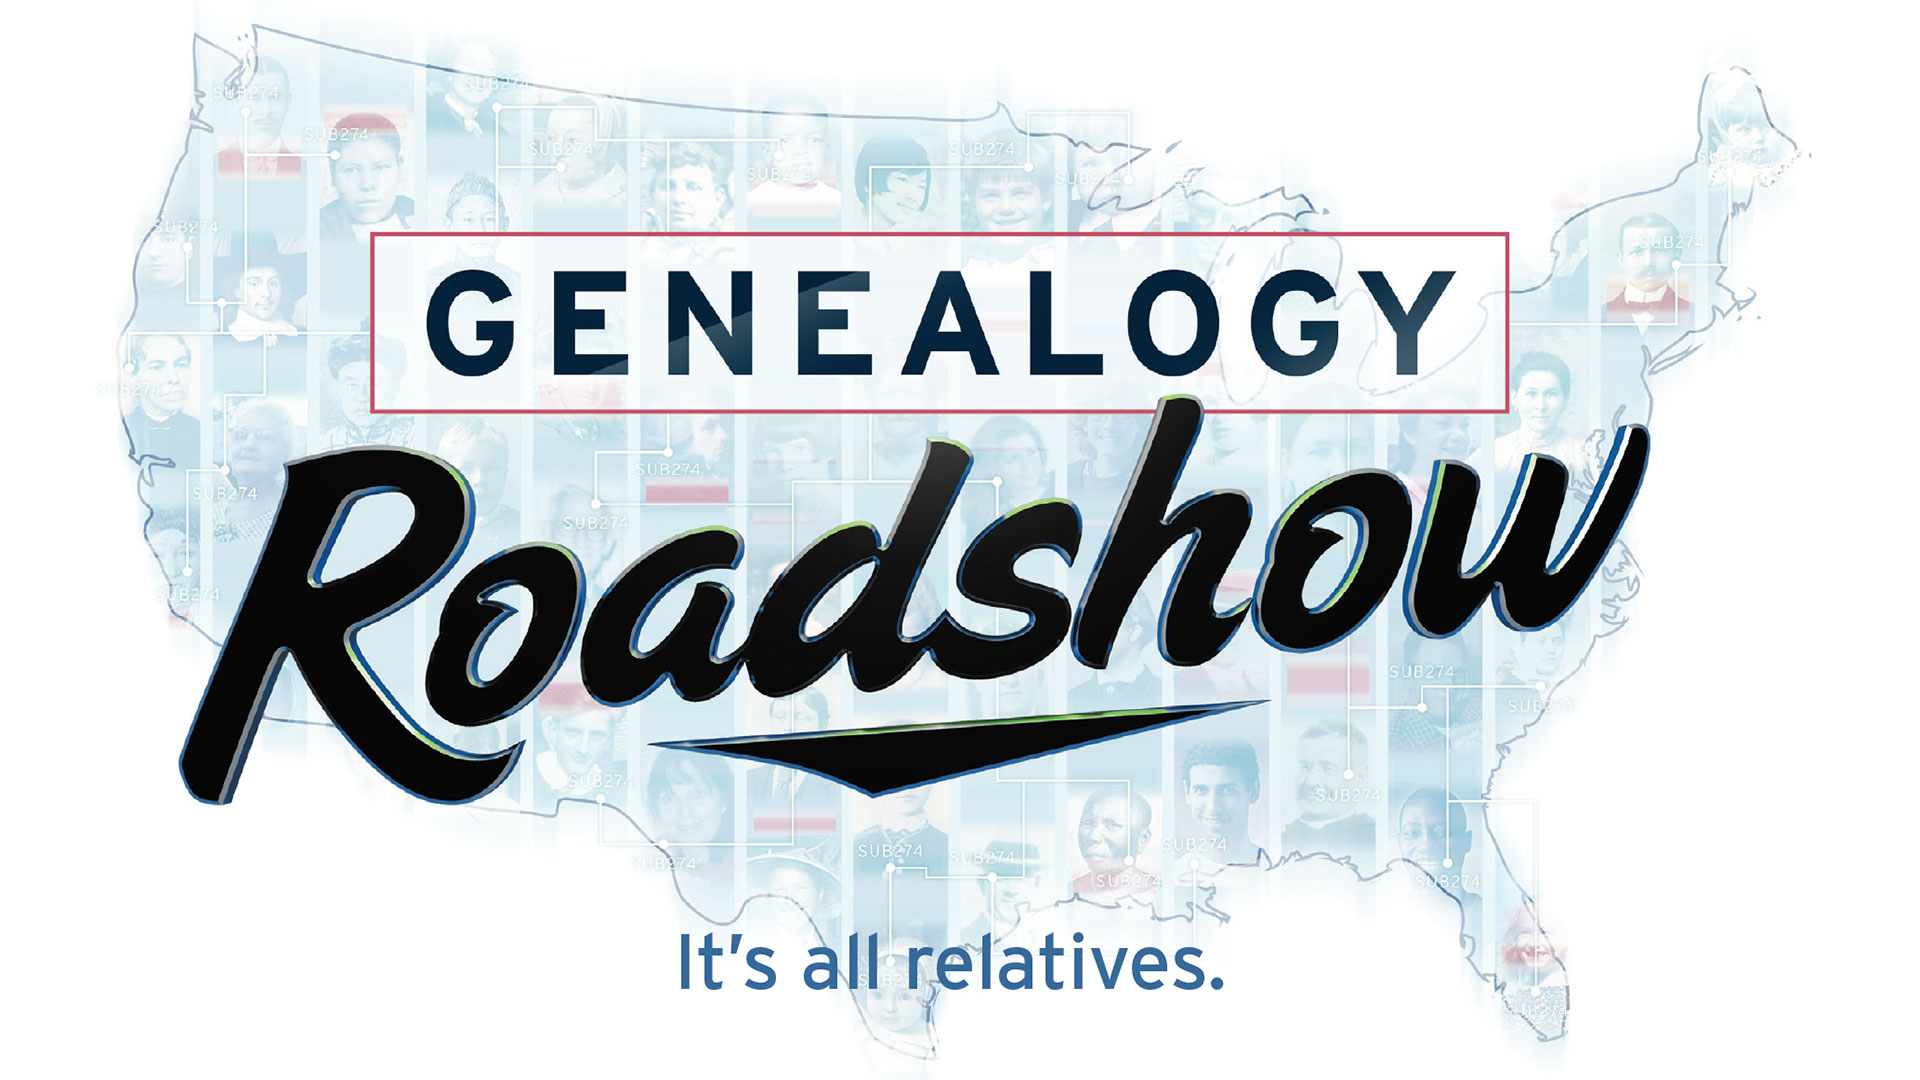 genealogy-roadshow-1920.jpg